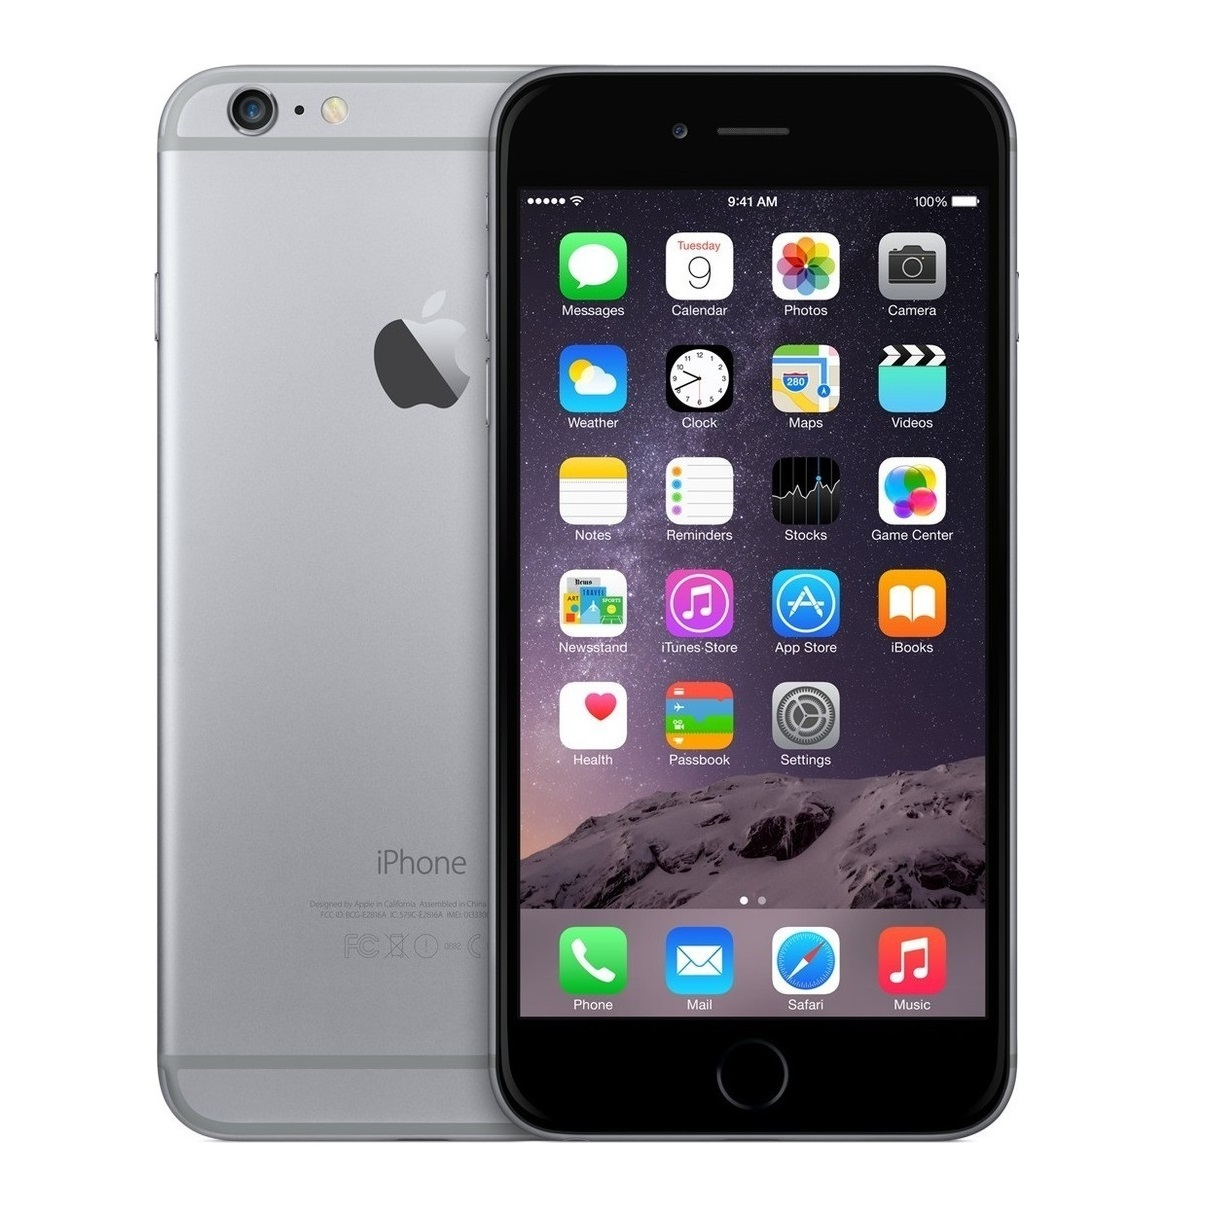 t mobile iphone apple cpo iphone 6 plus 16gb unlocked smartphone a1524 1017